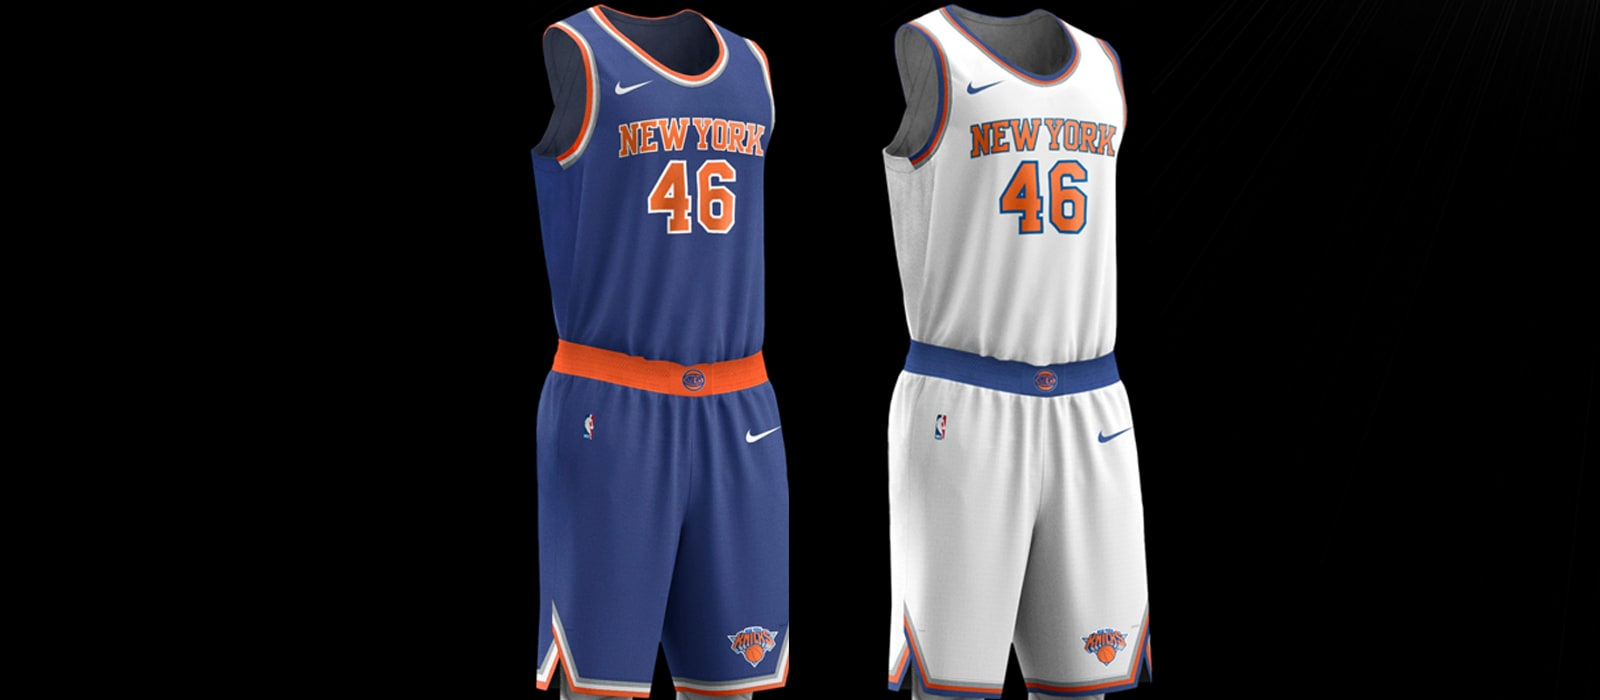 Nike\'s Statement uniforms will have NBA fans talking this season